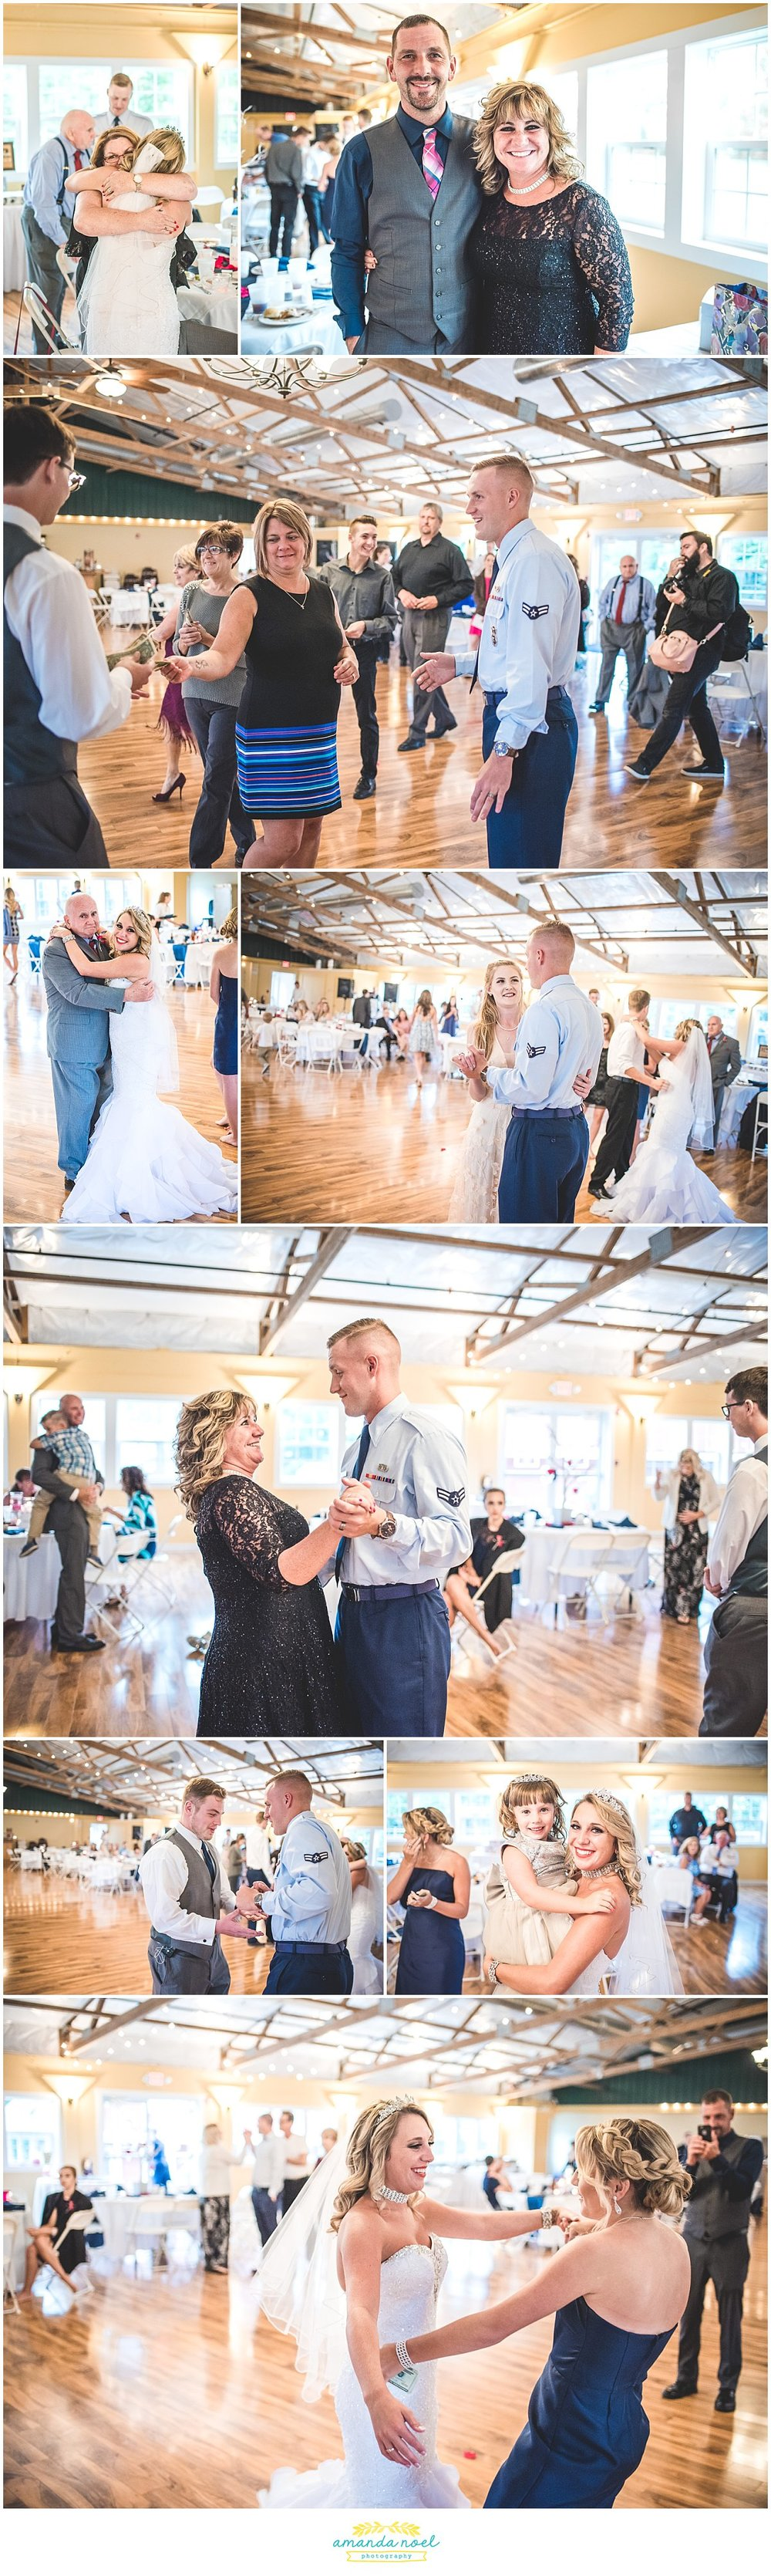 Springfield Ohio wedding candid reception dancing